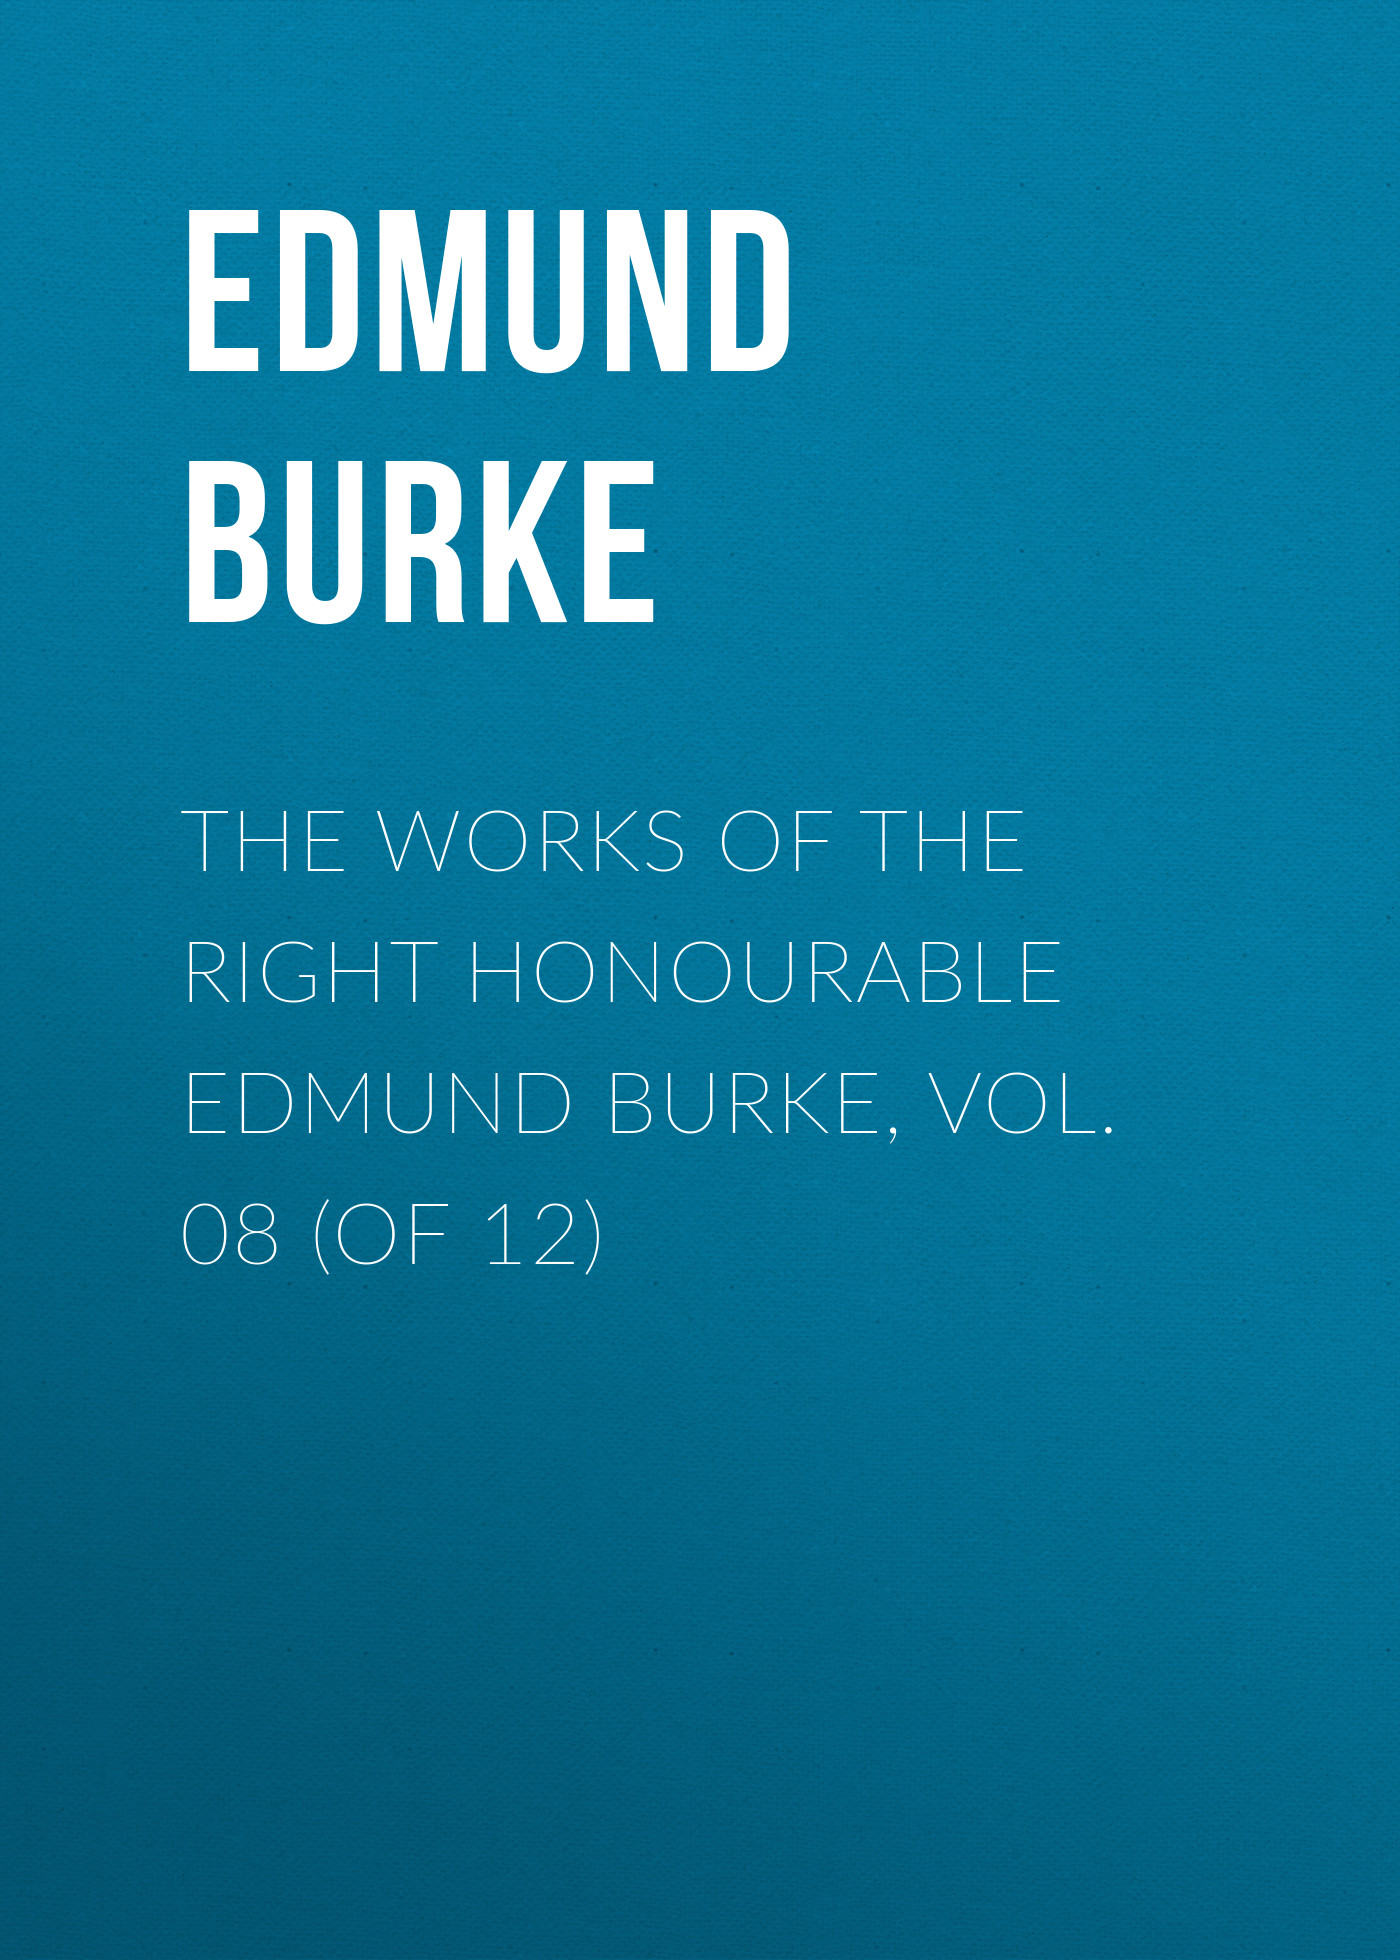 Edmund Burke The Works of the Right Honourable Edmund Burke, Vol. 08 (of 12) edmund burke the works of the right honourable edmund burke vol 02 of 12